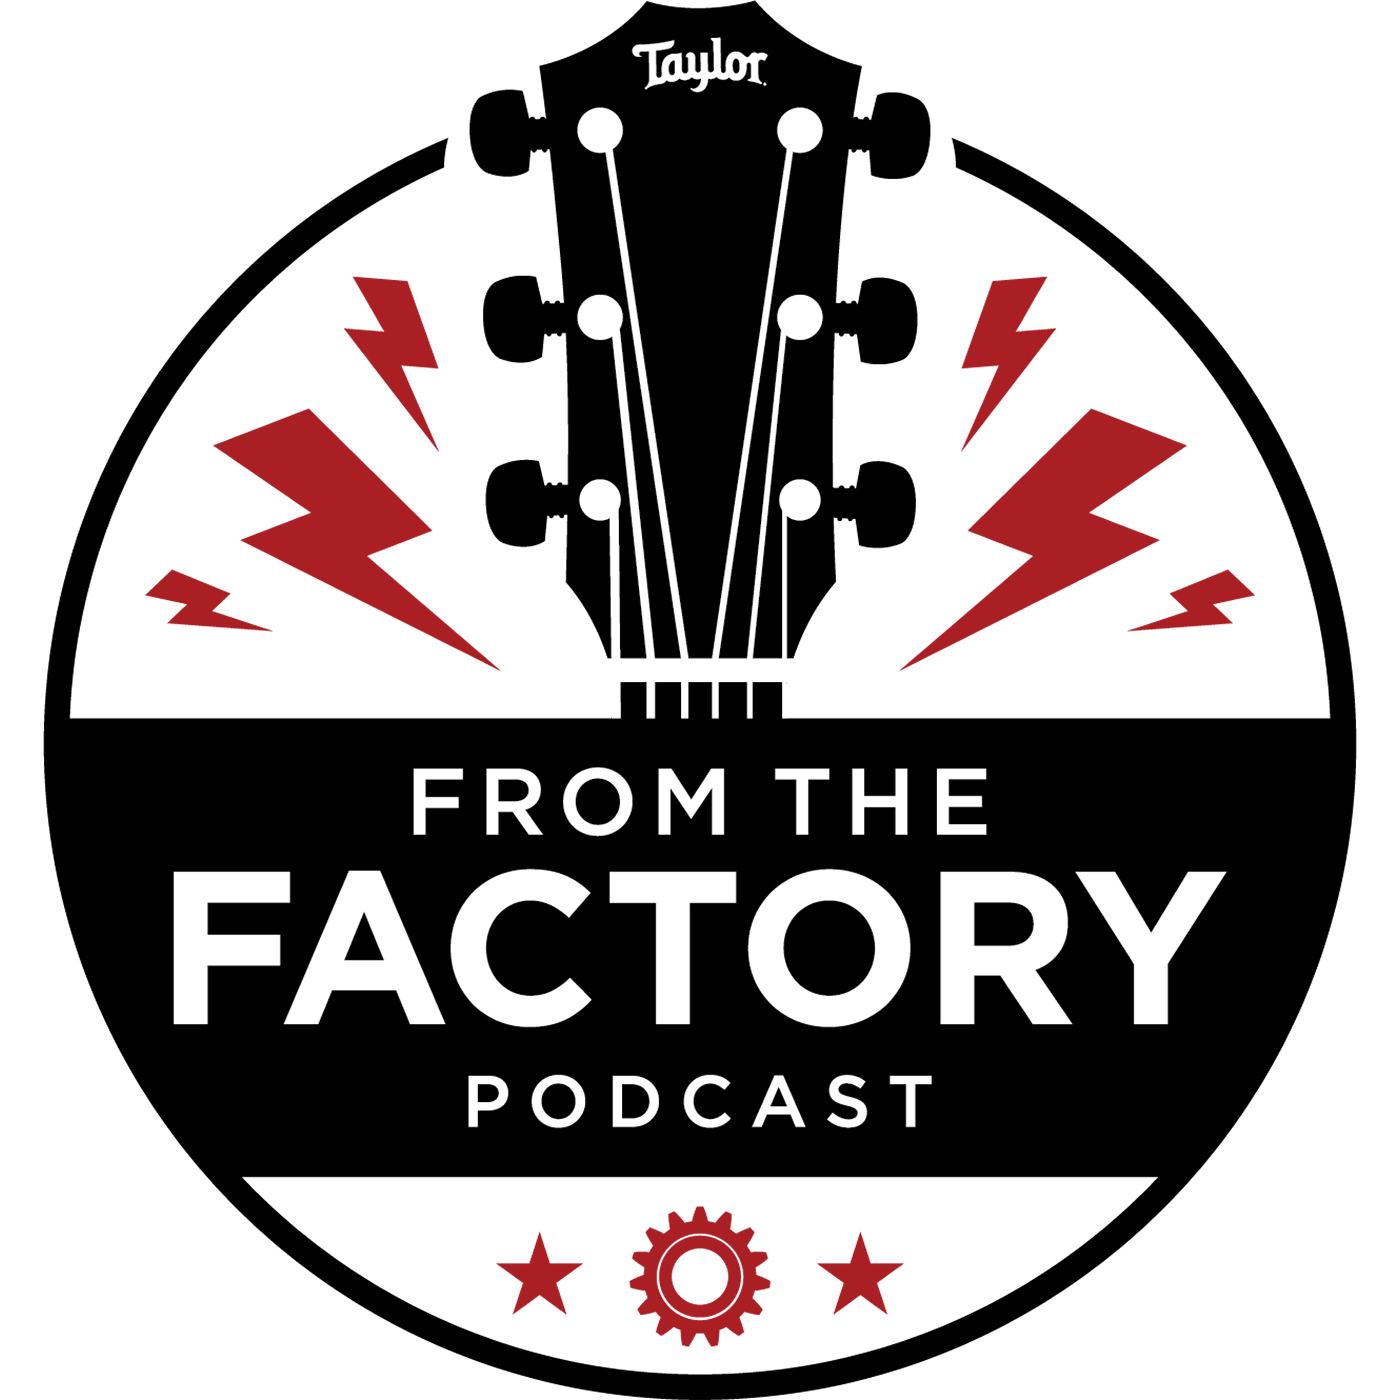 Taylor Guitars: From The Factory Podcast show art